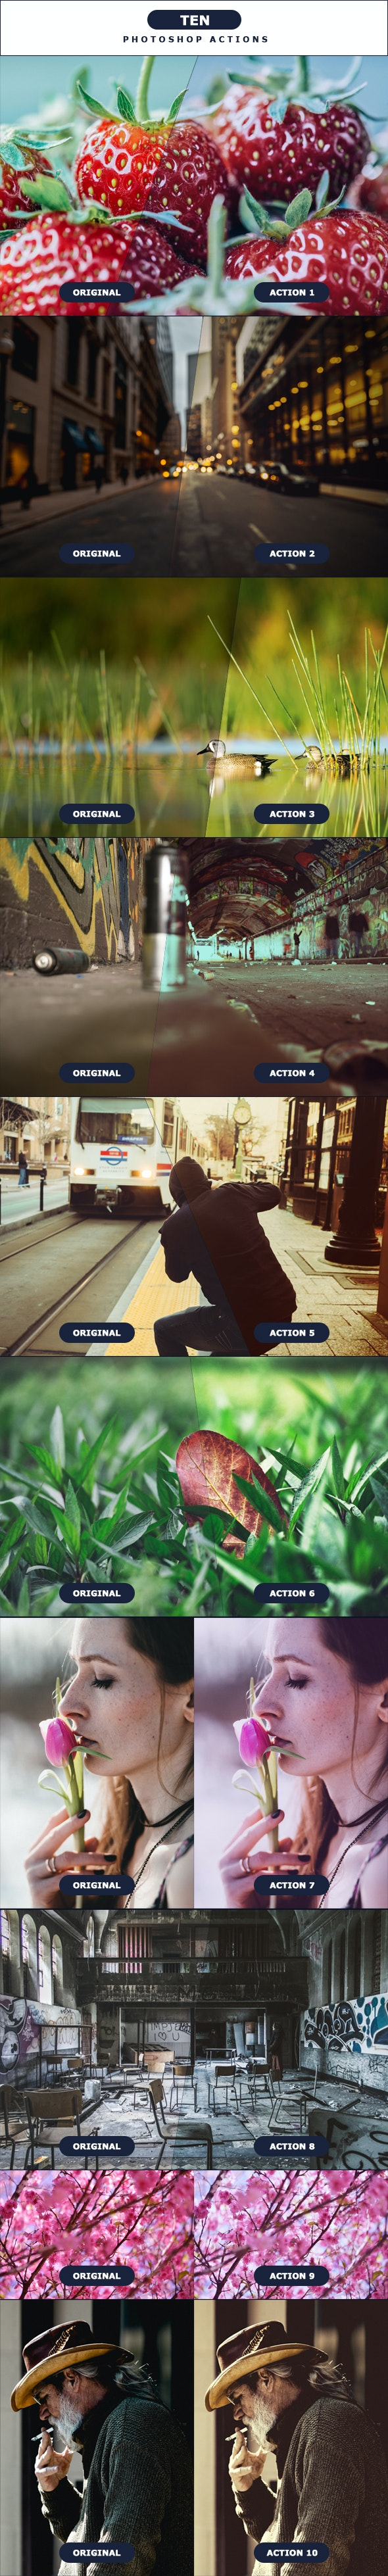 TEN - Photoshop Action 4 - Photo Effects Actions